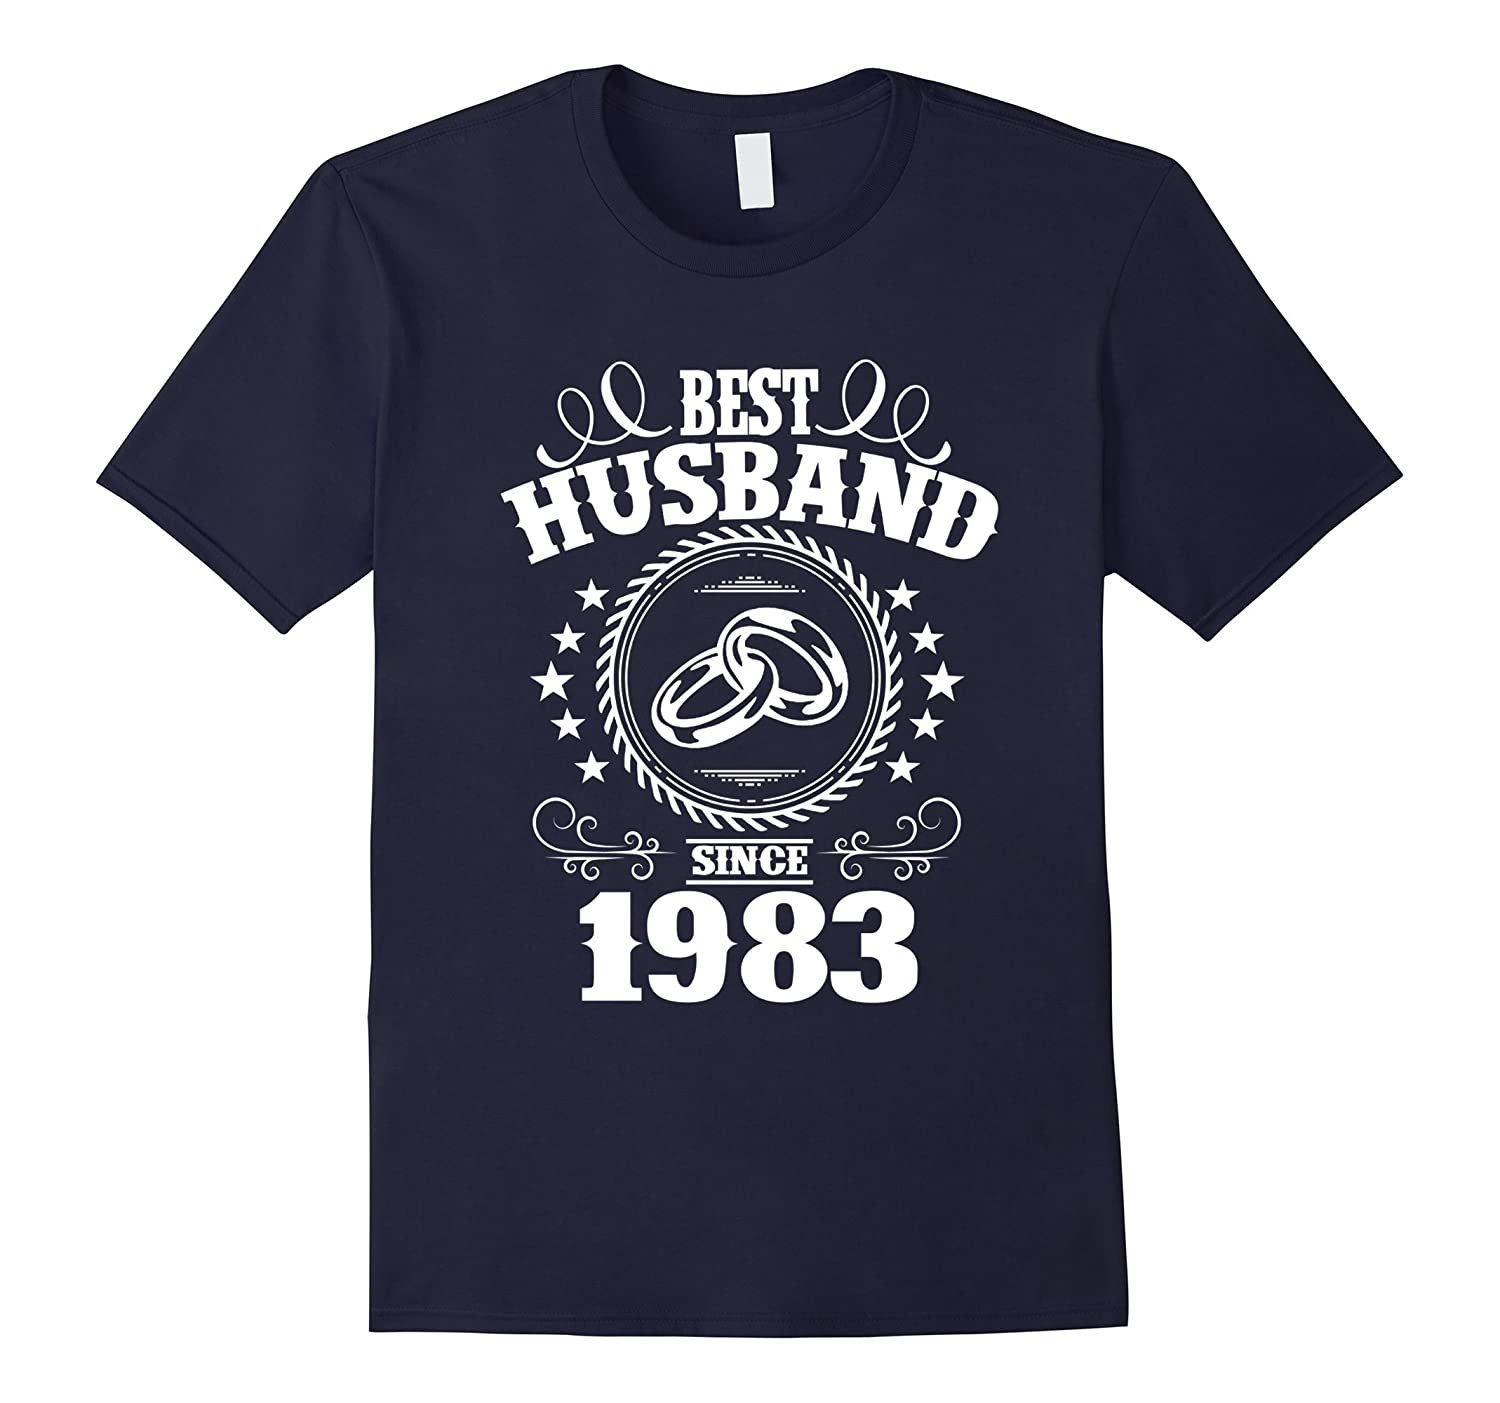 34th Wedding Anniversary T-Shirts For Husband From Wife-PL